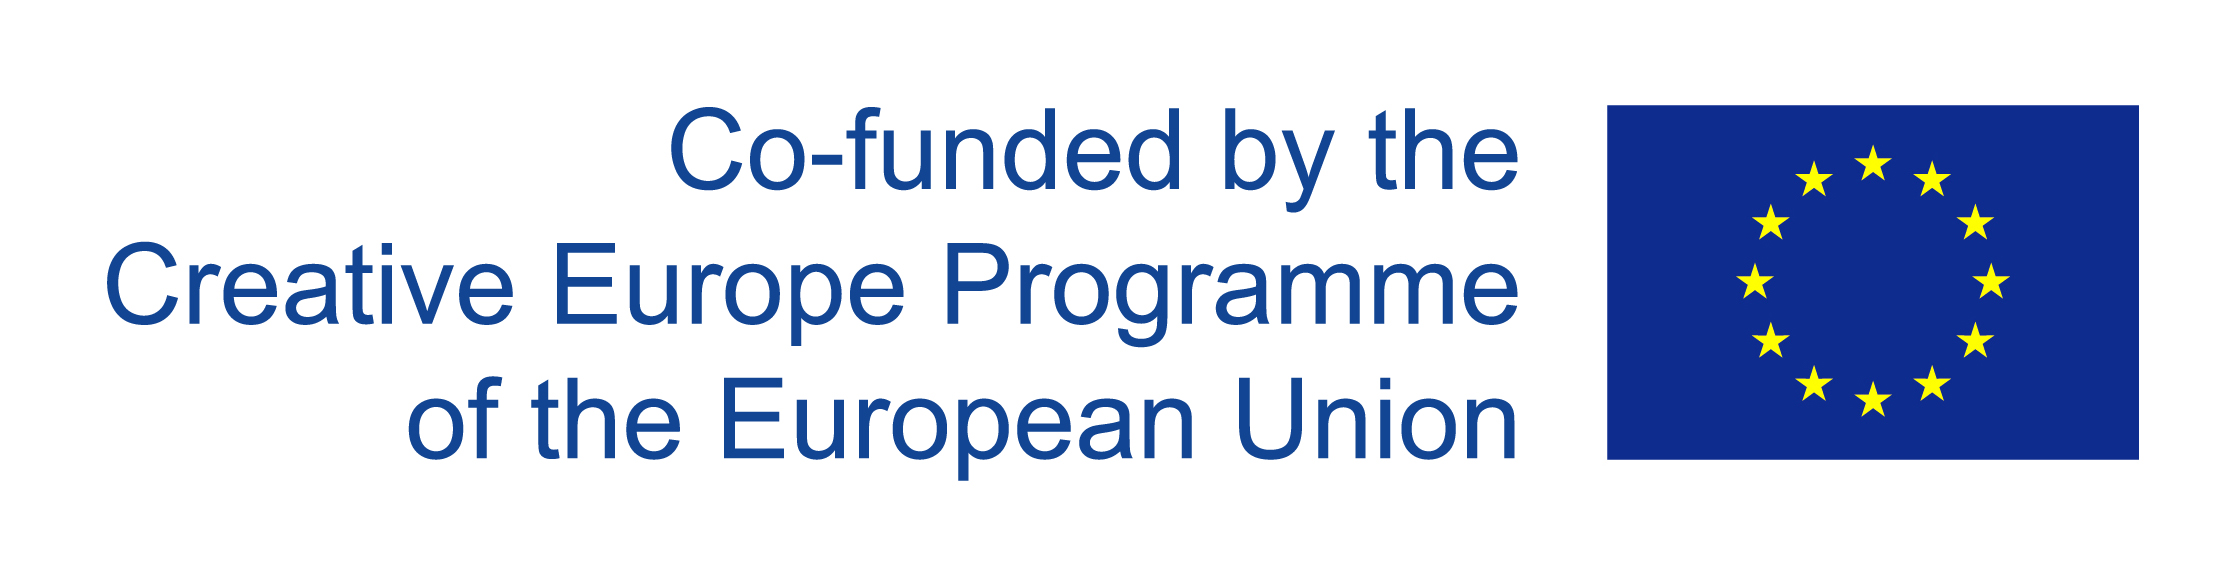 Co-funded by Creative Europe